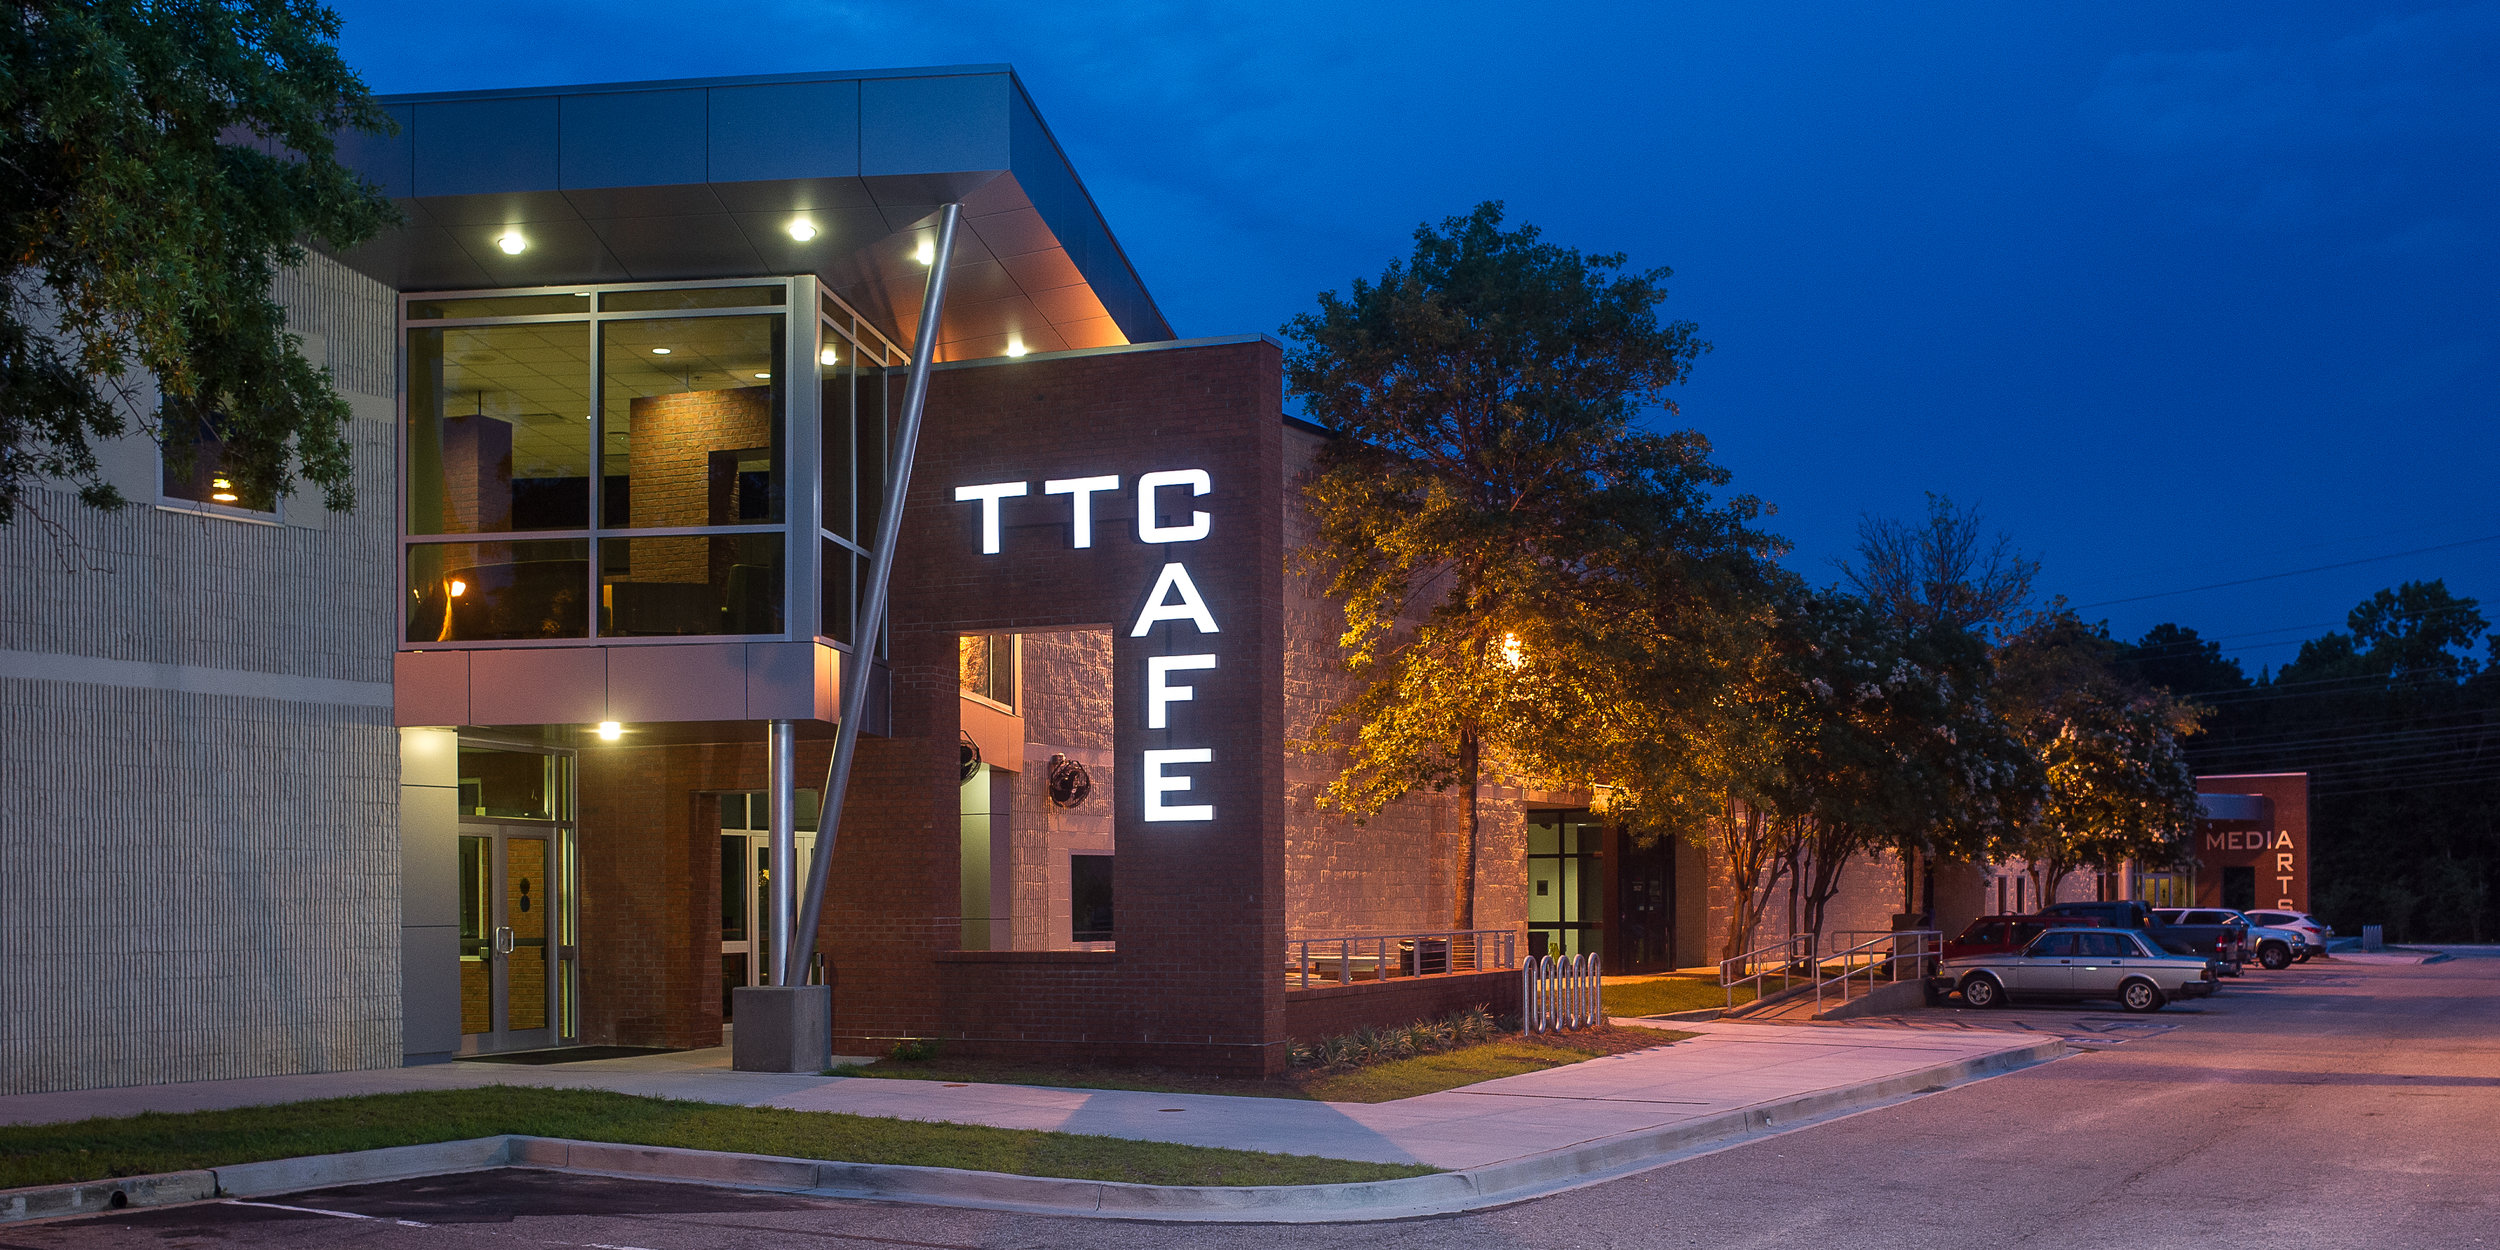 Trident Technical College - Cafe & Media Center